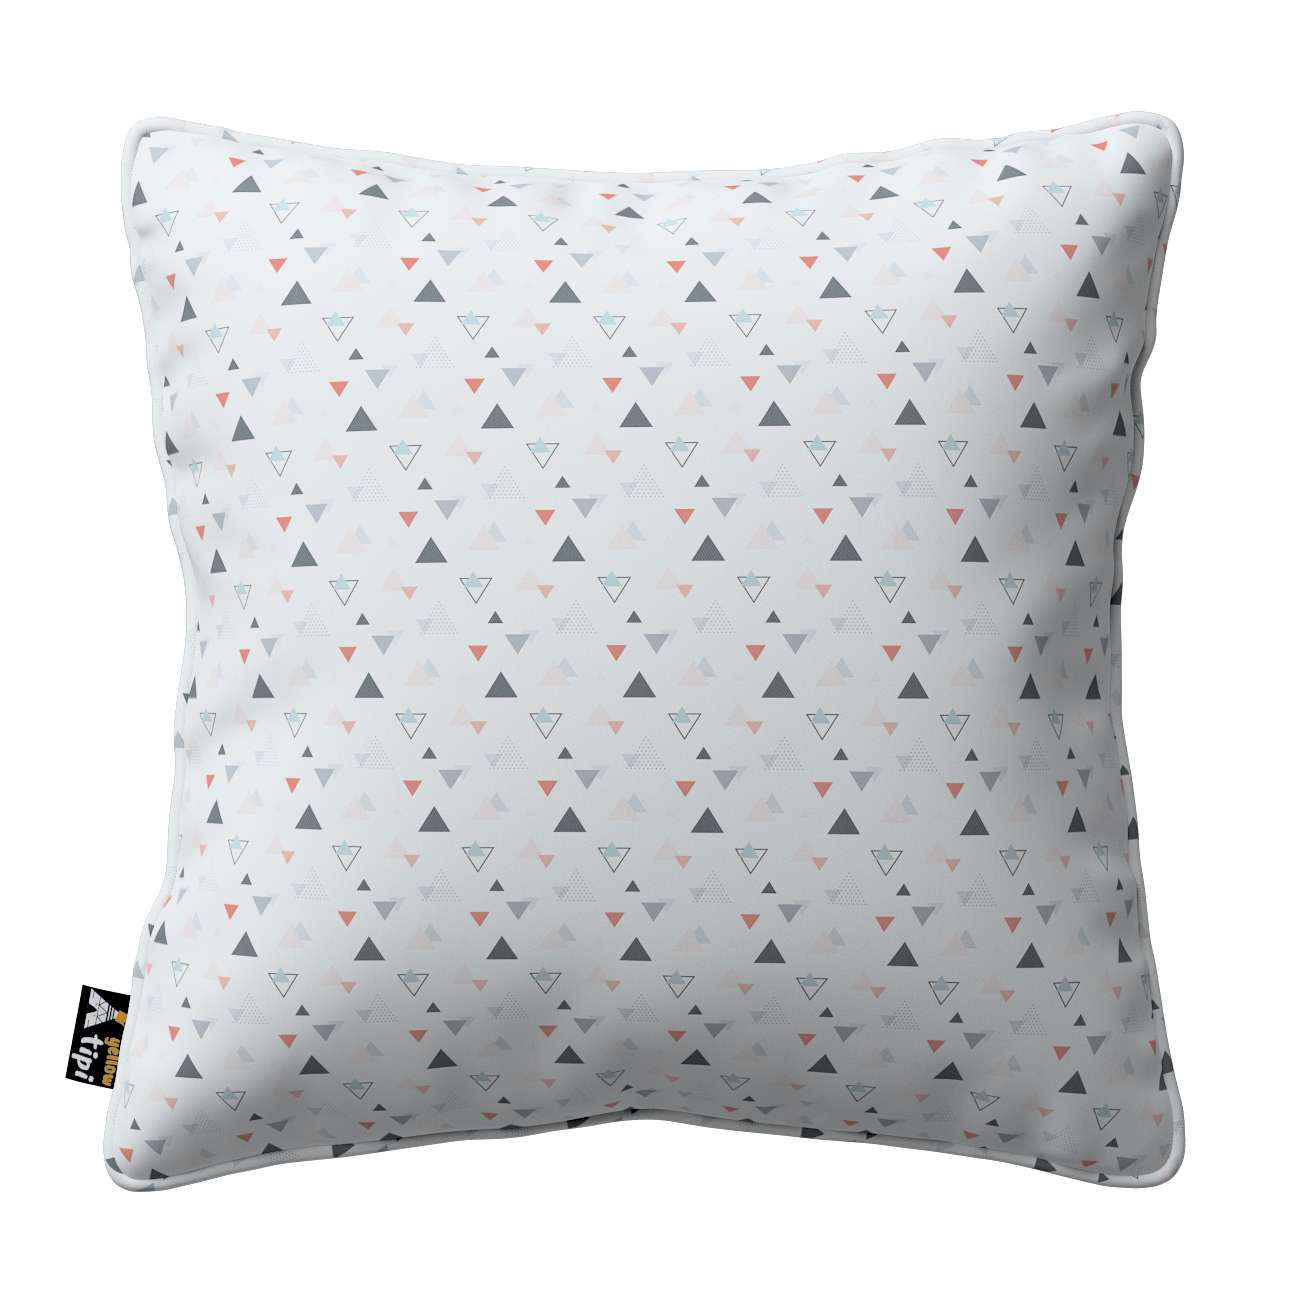 Lola piped cushion cover in collection Magic Collection, fabric: 500-22